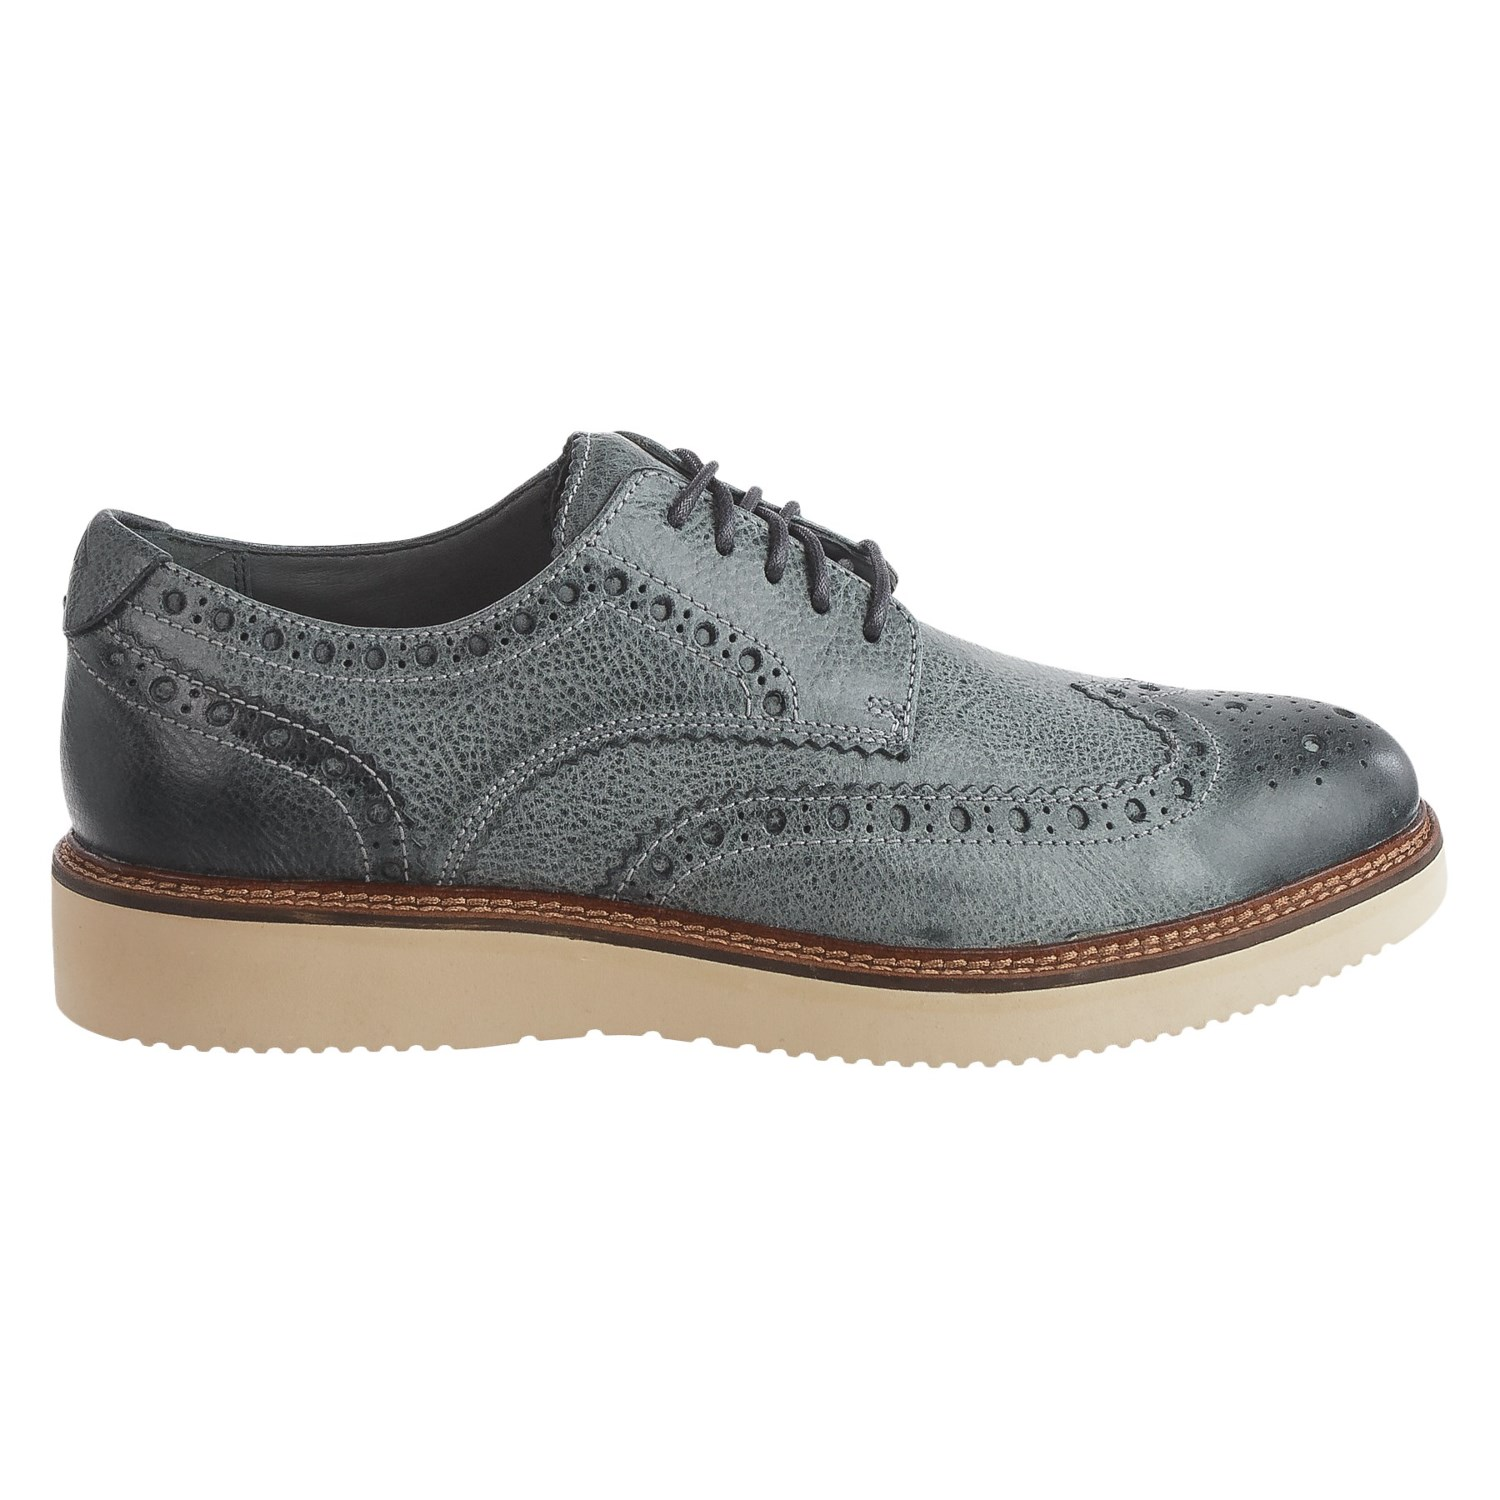 Similar to sperry top-sider gold annapolis wingtip